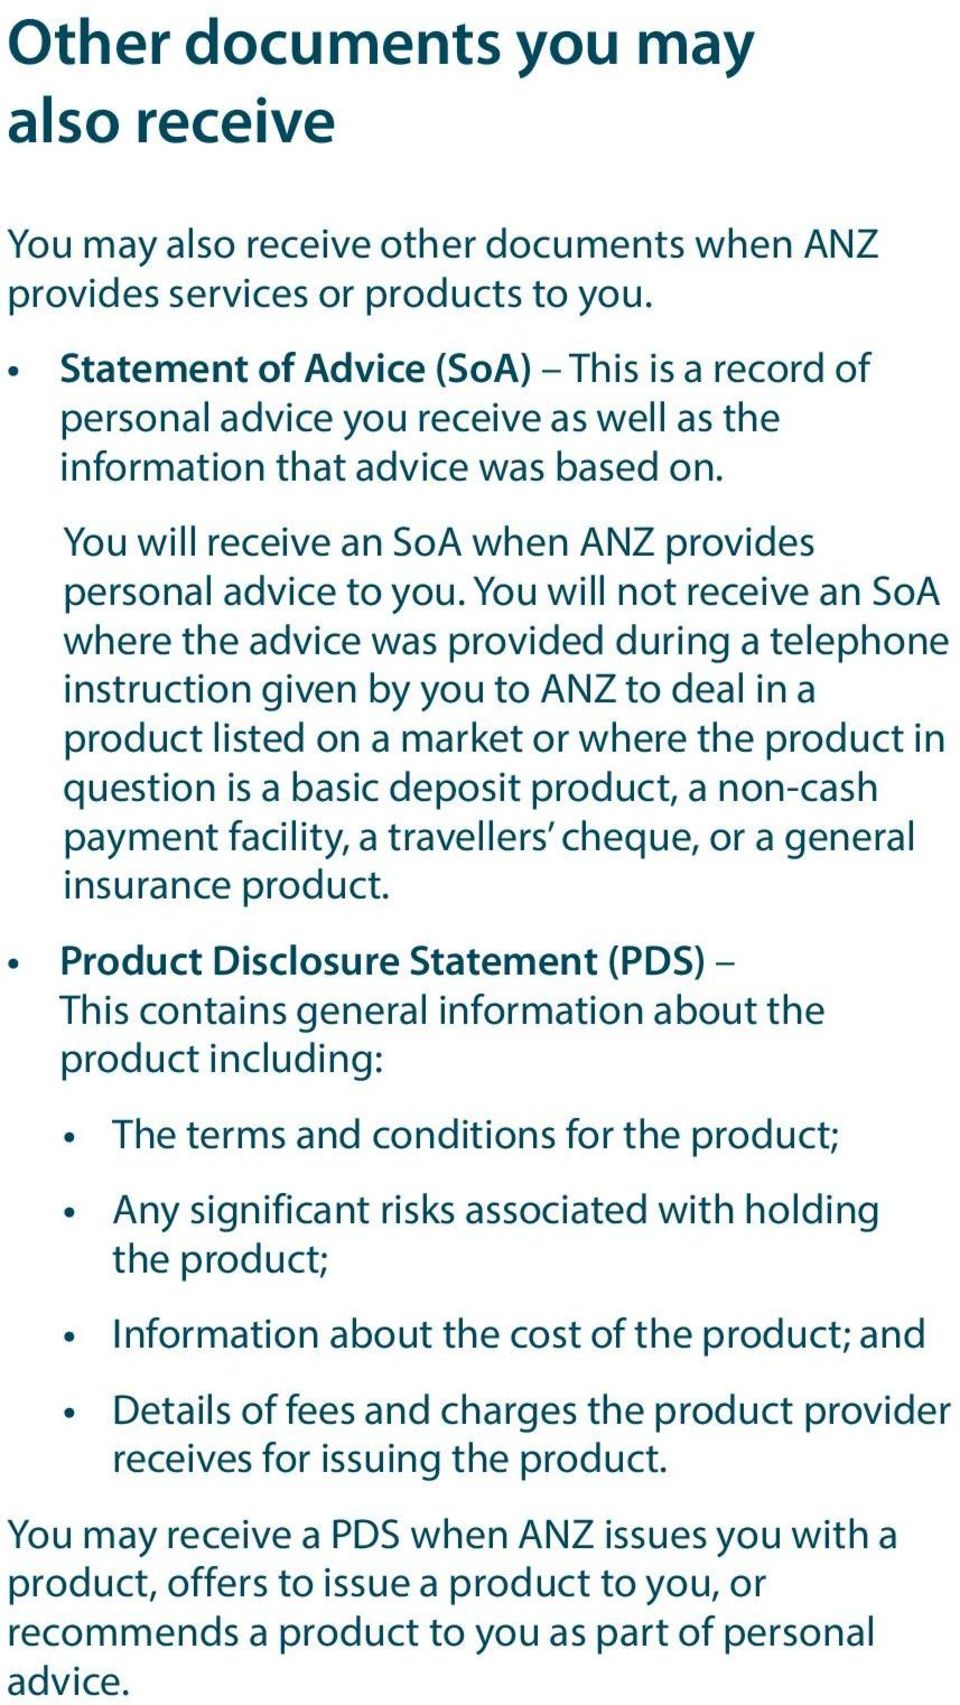 You will not receive an SoA where the advice was provided during a telephone instruction given by you to ANZ to deal in a product listed on a market or where the product in question is a basic